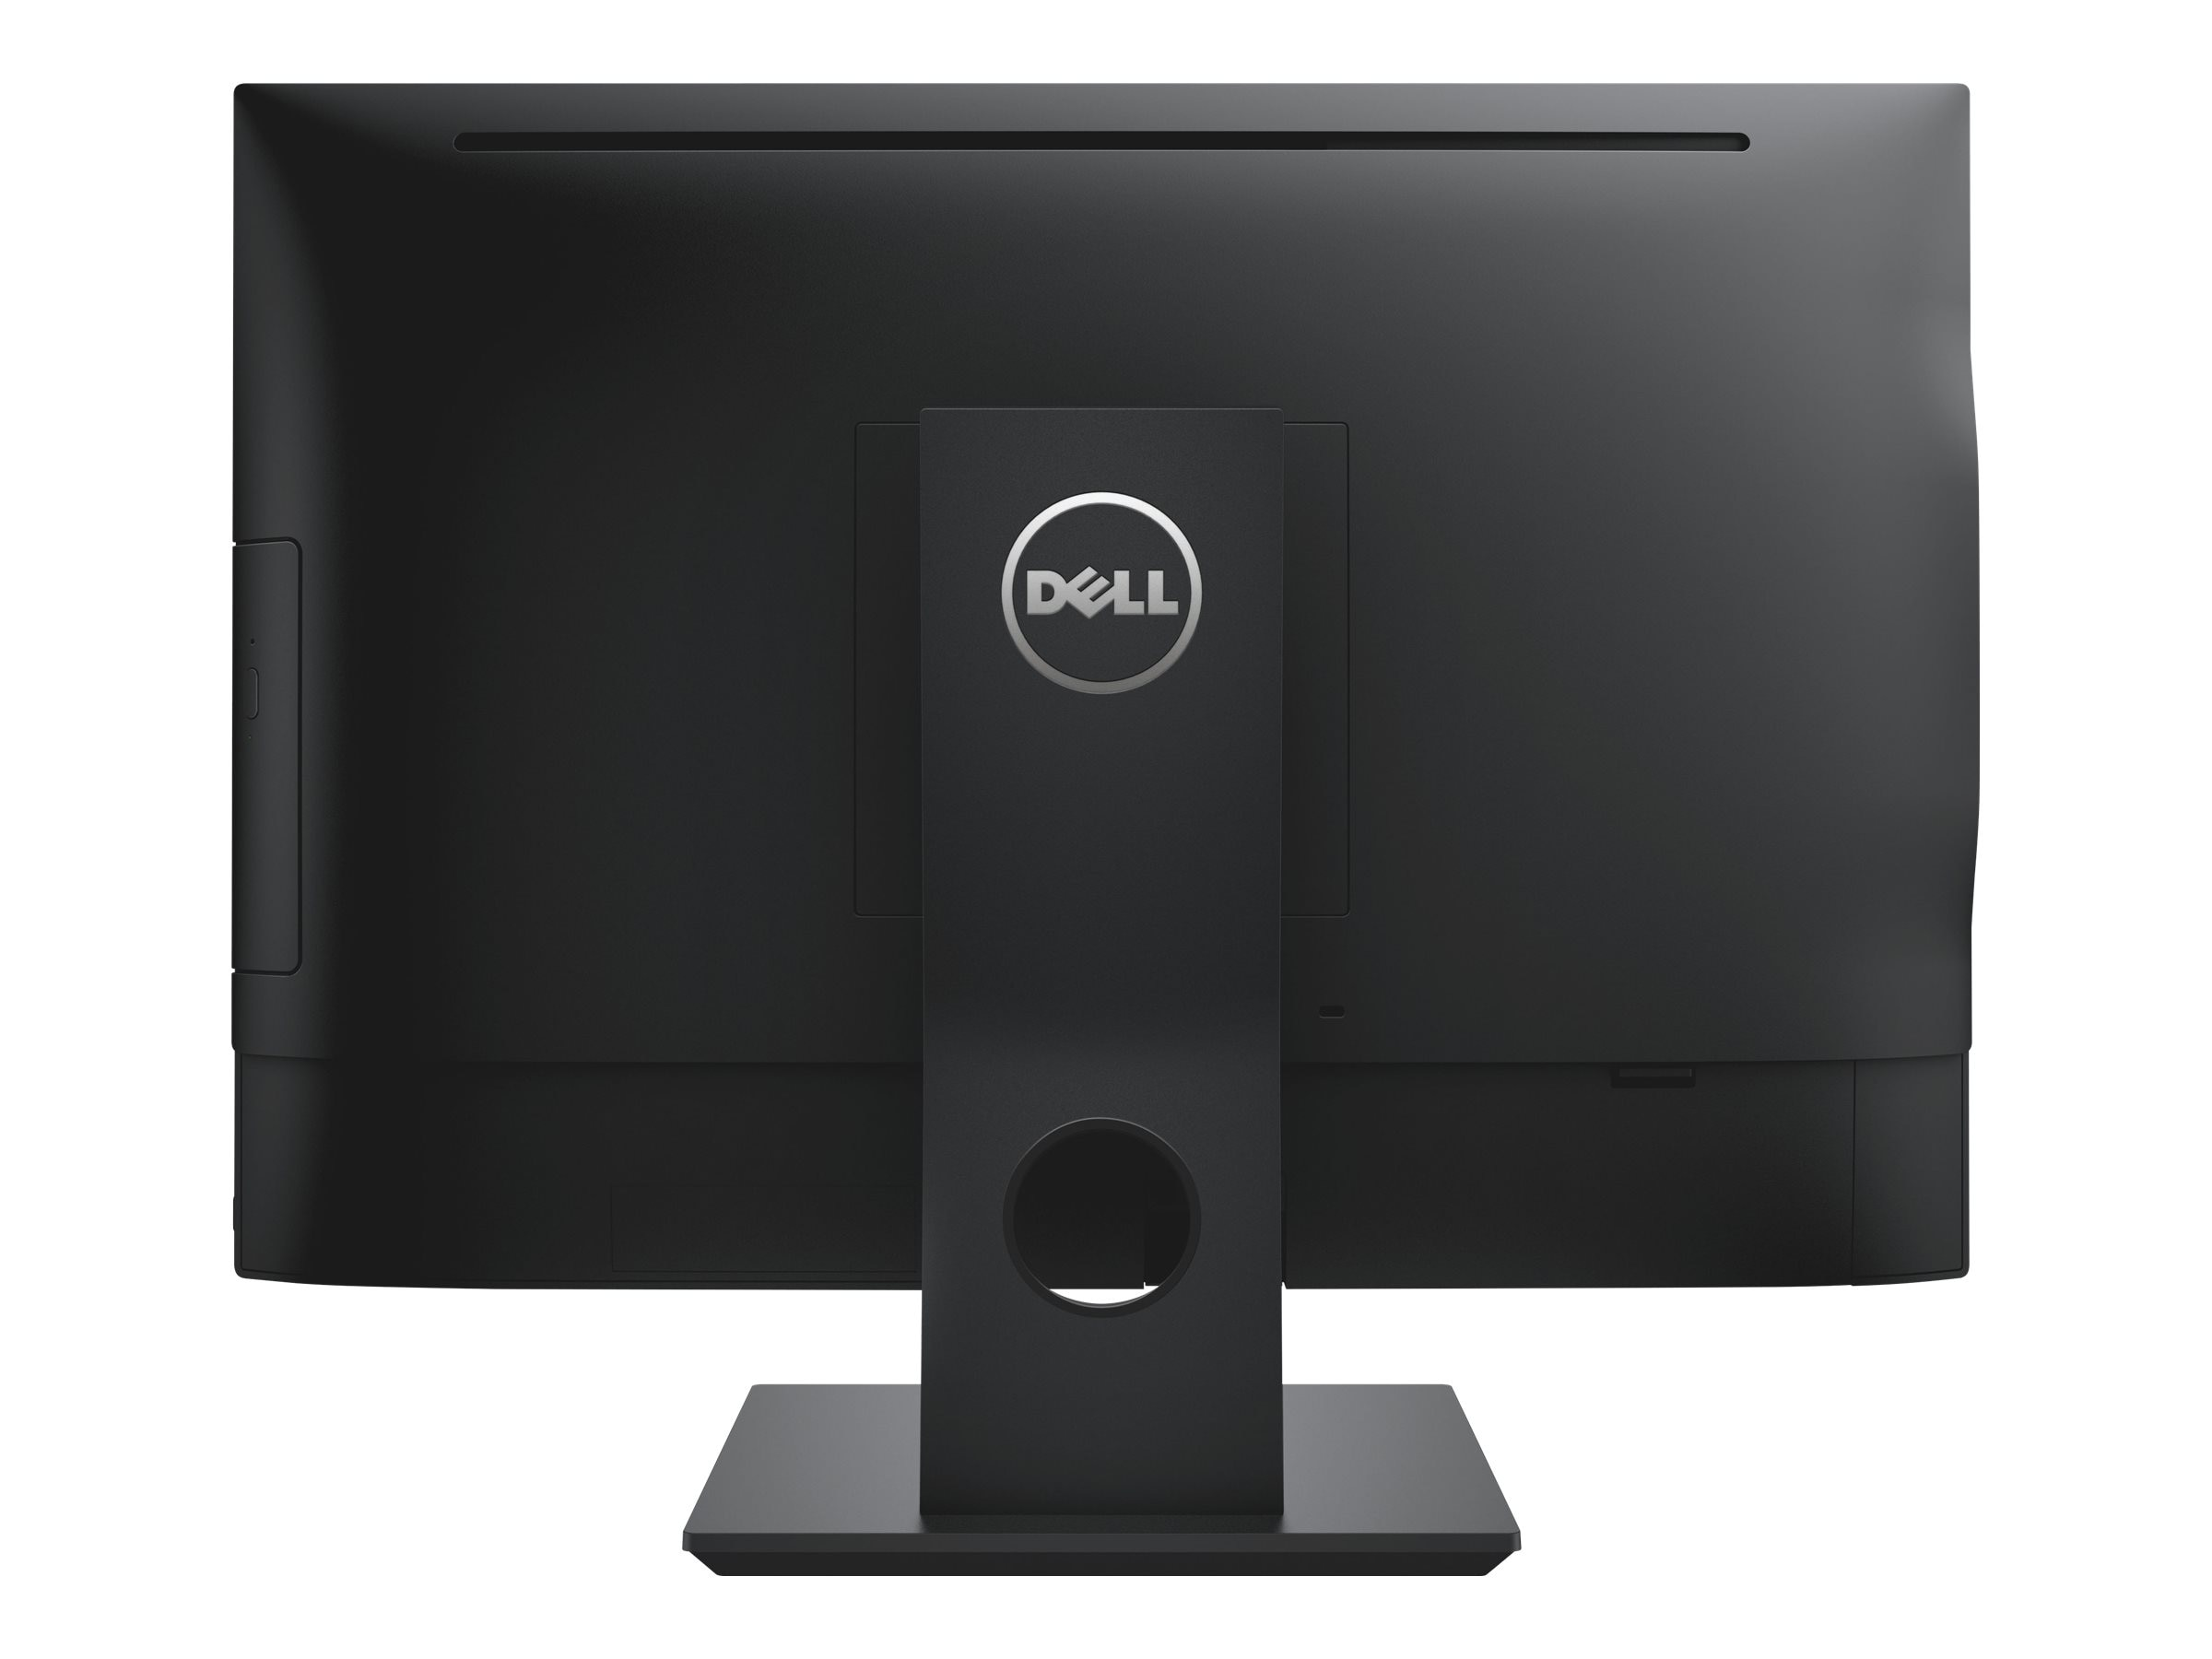 Dell 2HD1J Image 4